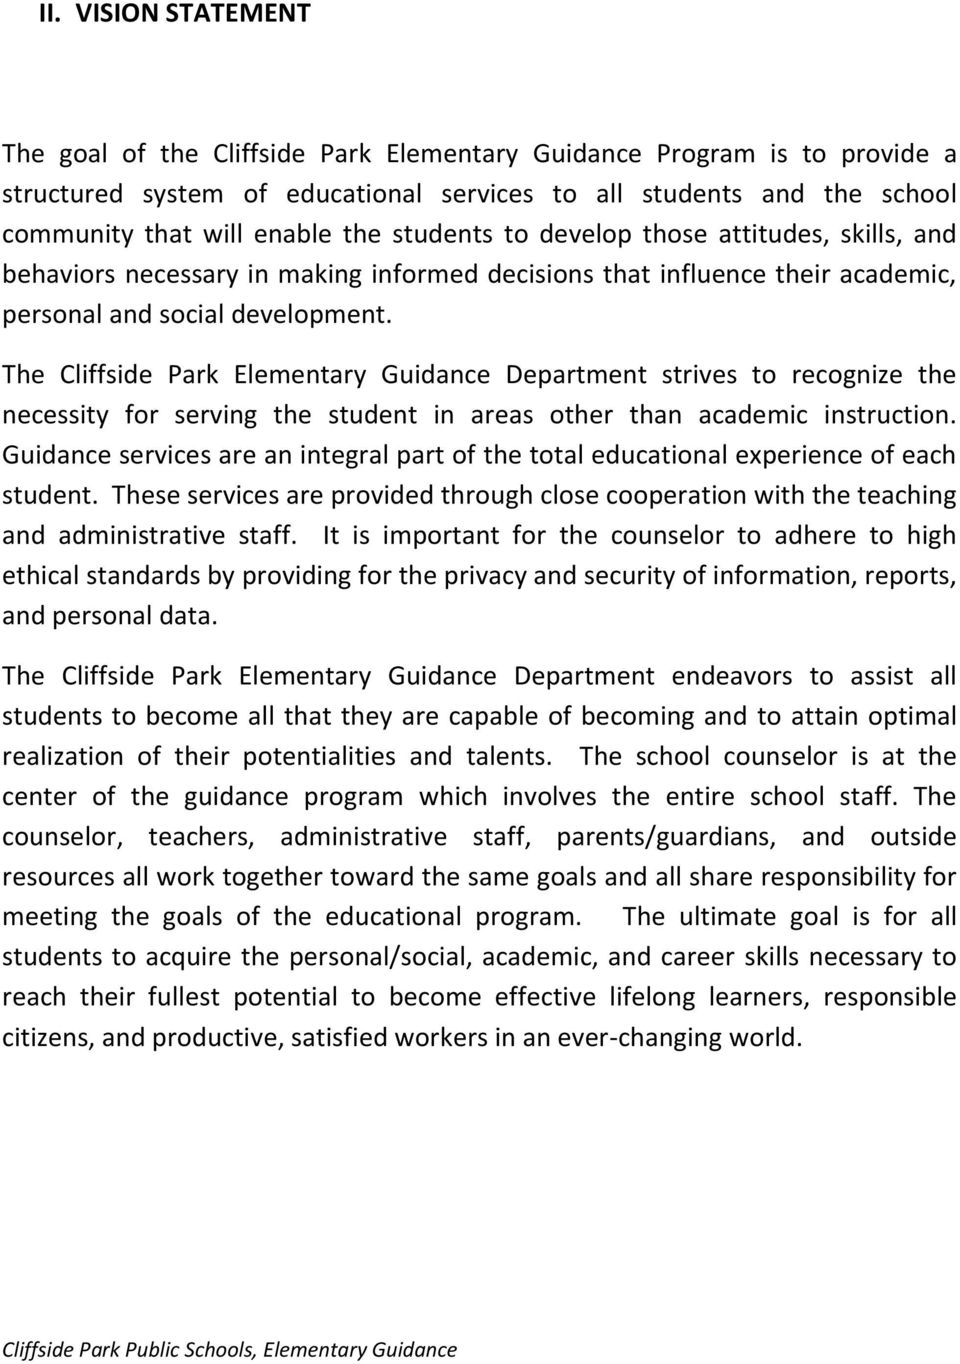 The Cliffside Park Elementary Guidance Department strives to recognize the necessity for serving the student in areas other than academic instruction.